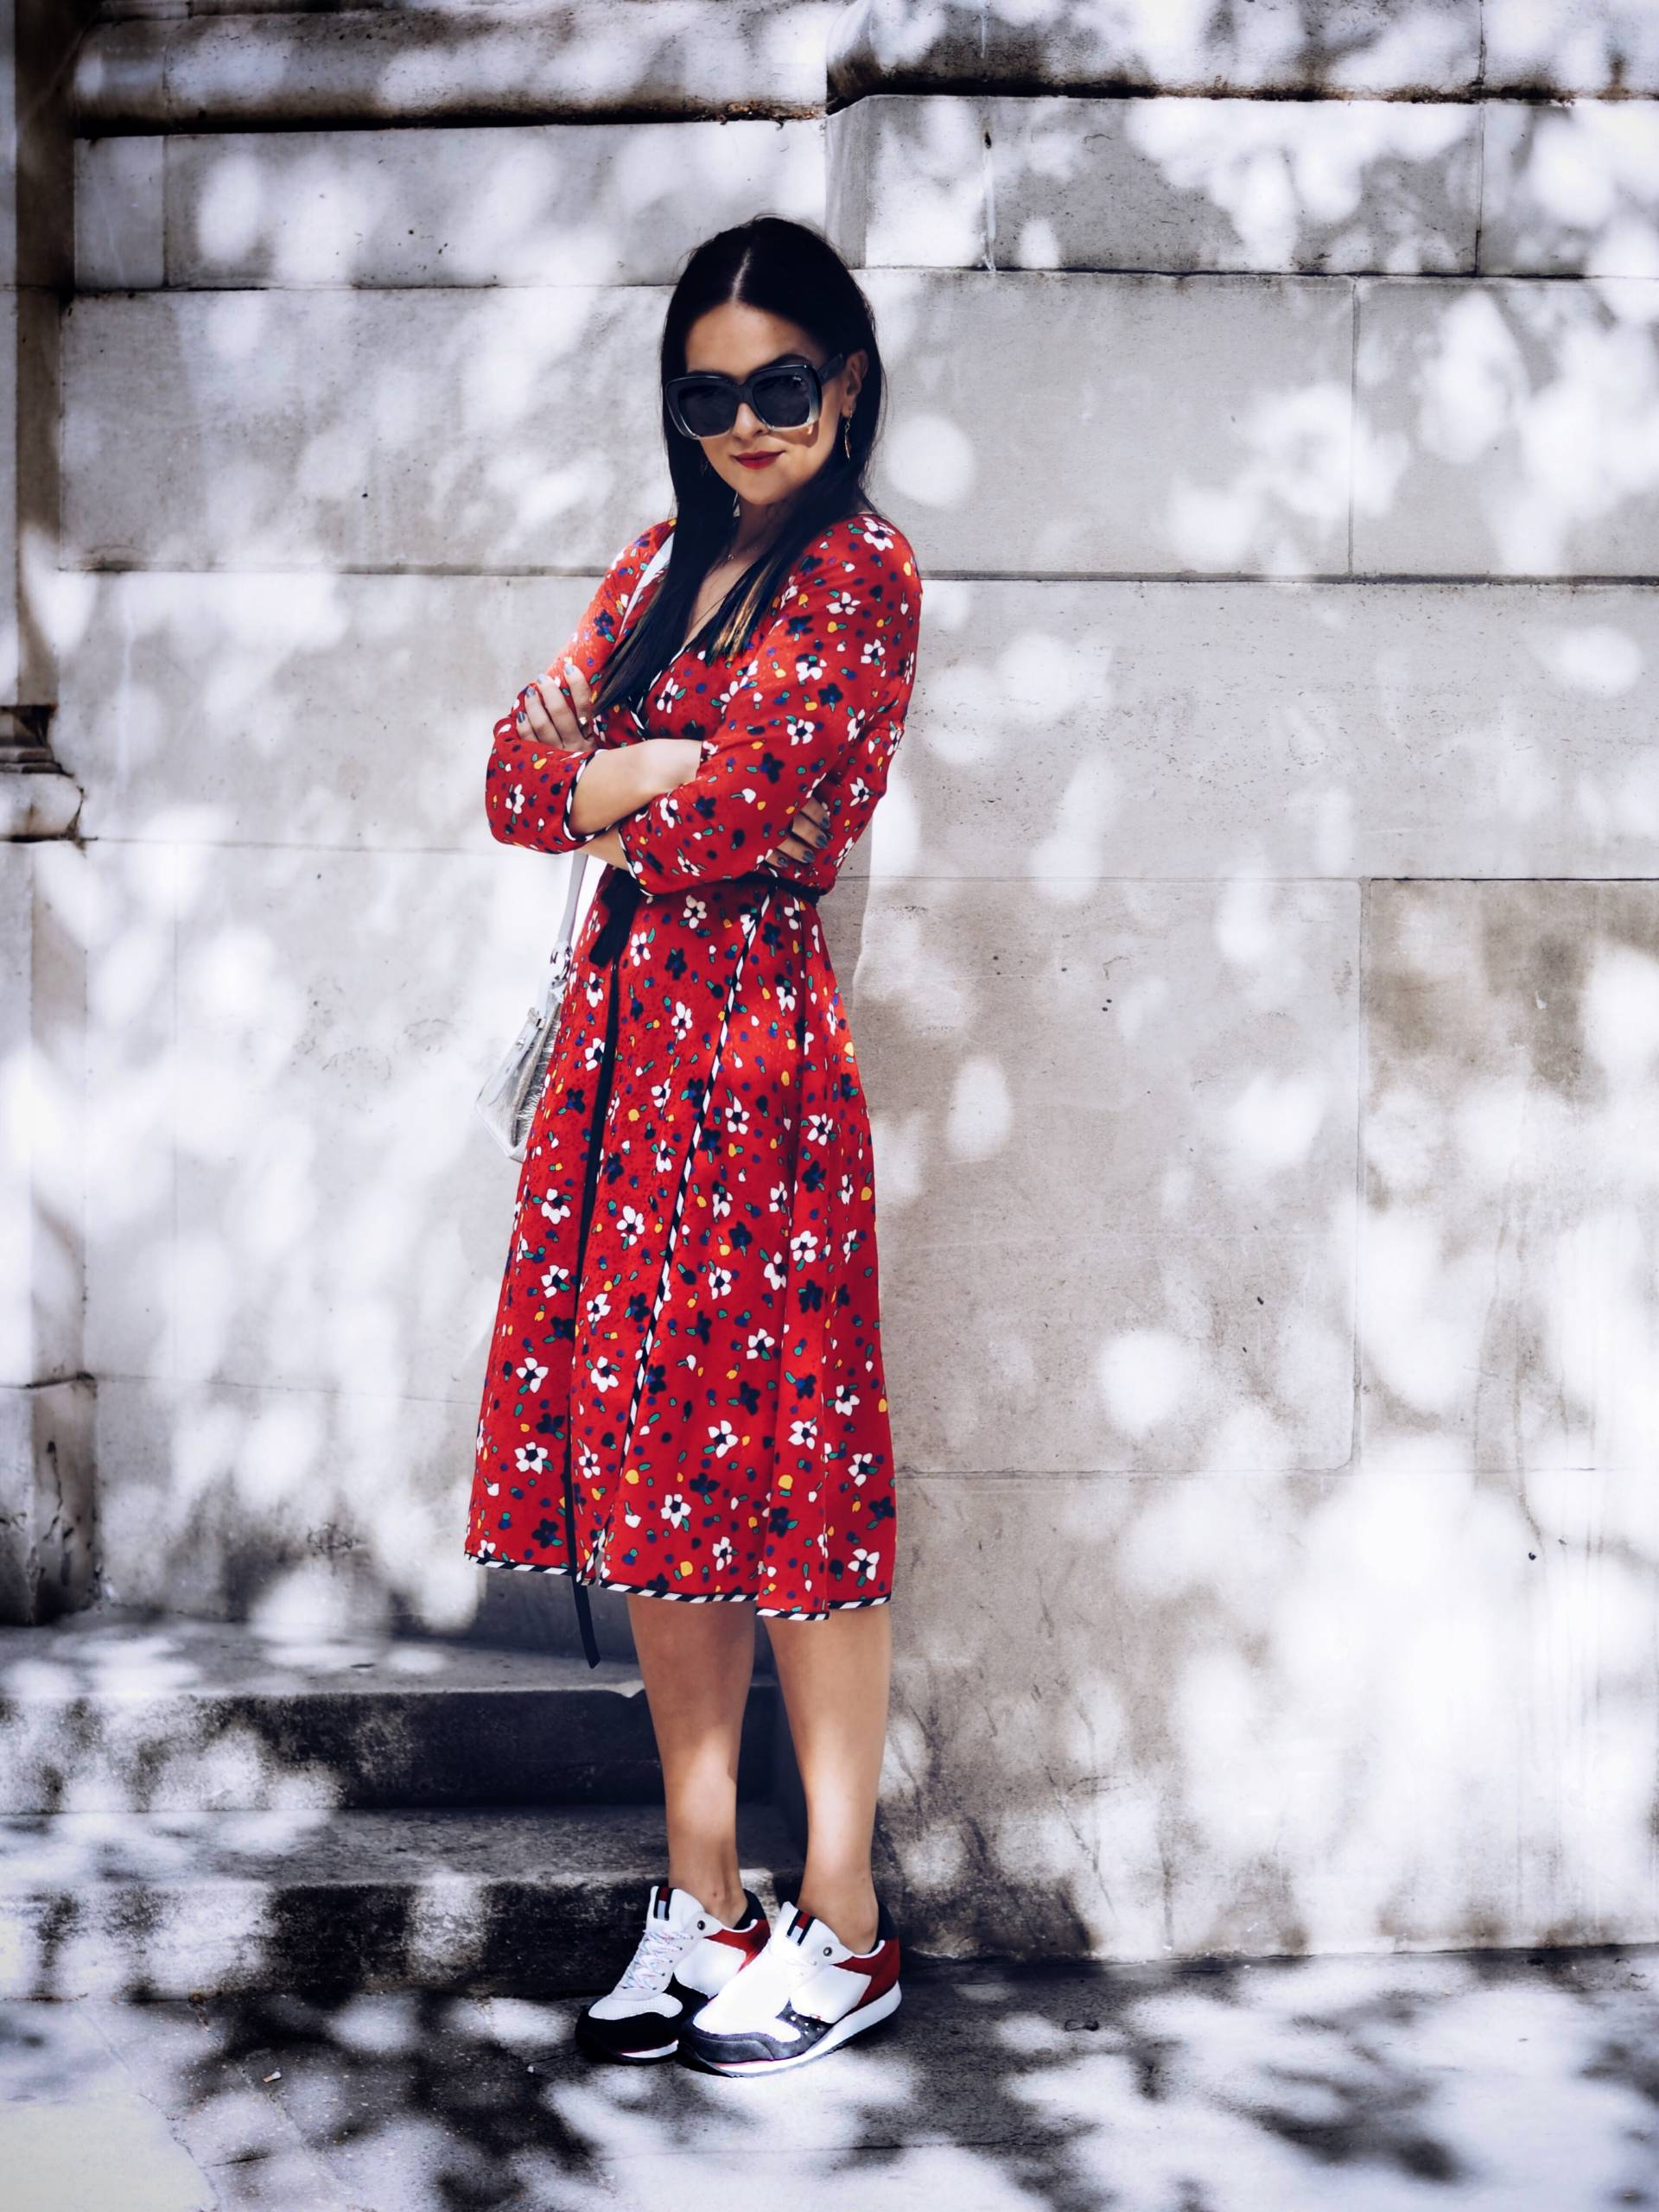 MARC-JACOBS-RED-FLORAL-WRAP-DRESS-BLOGGER-STYLING-LFW-SS18